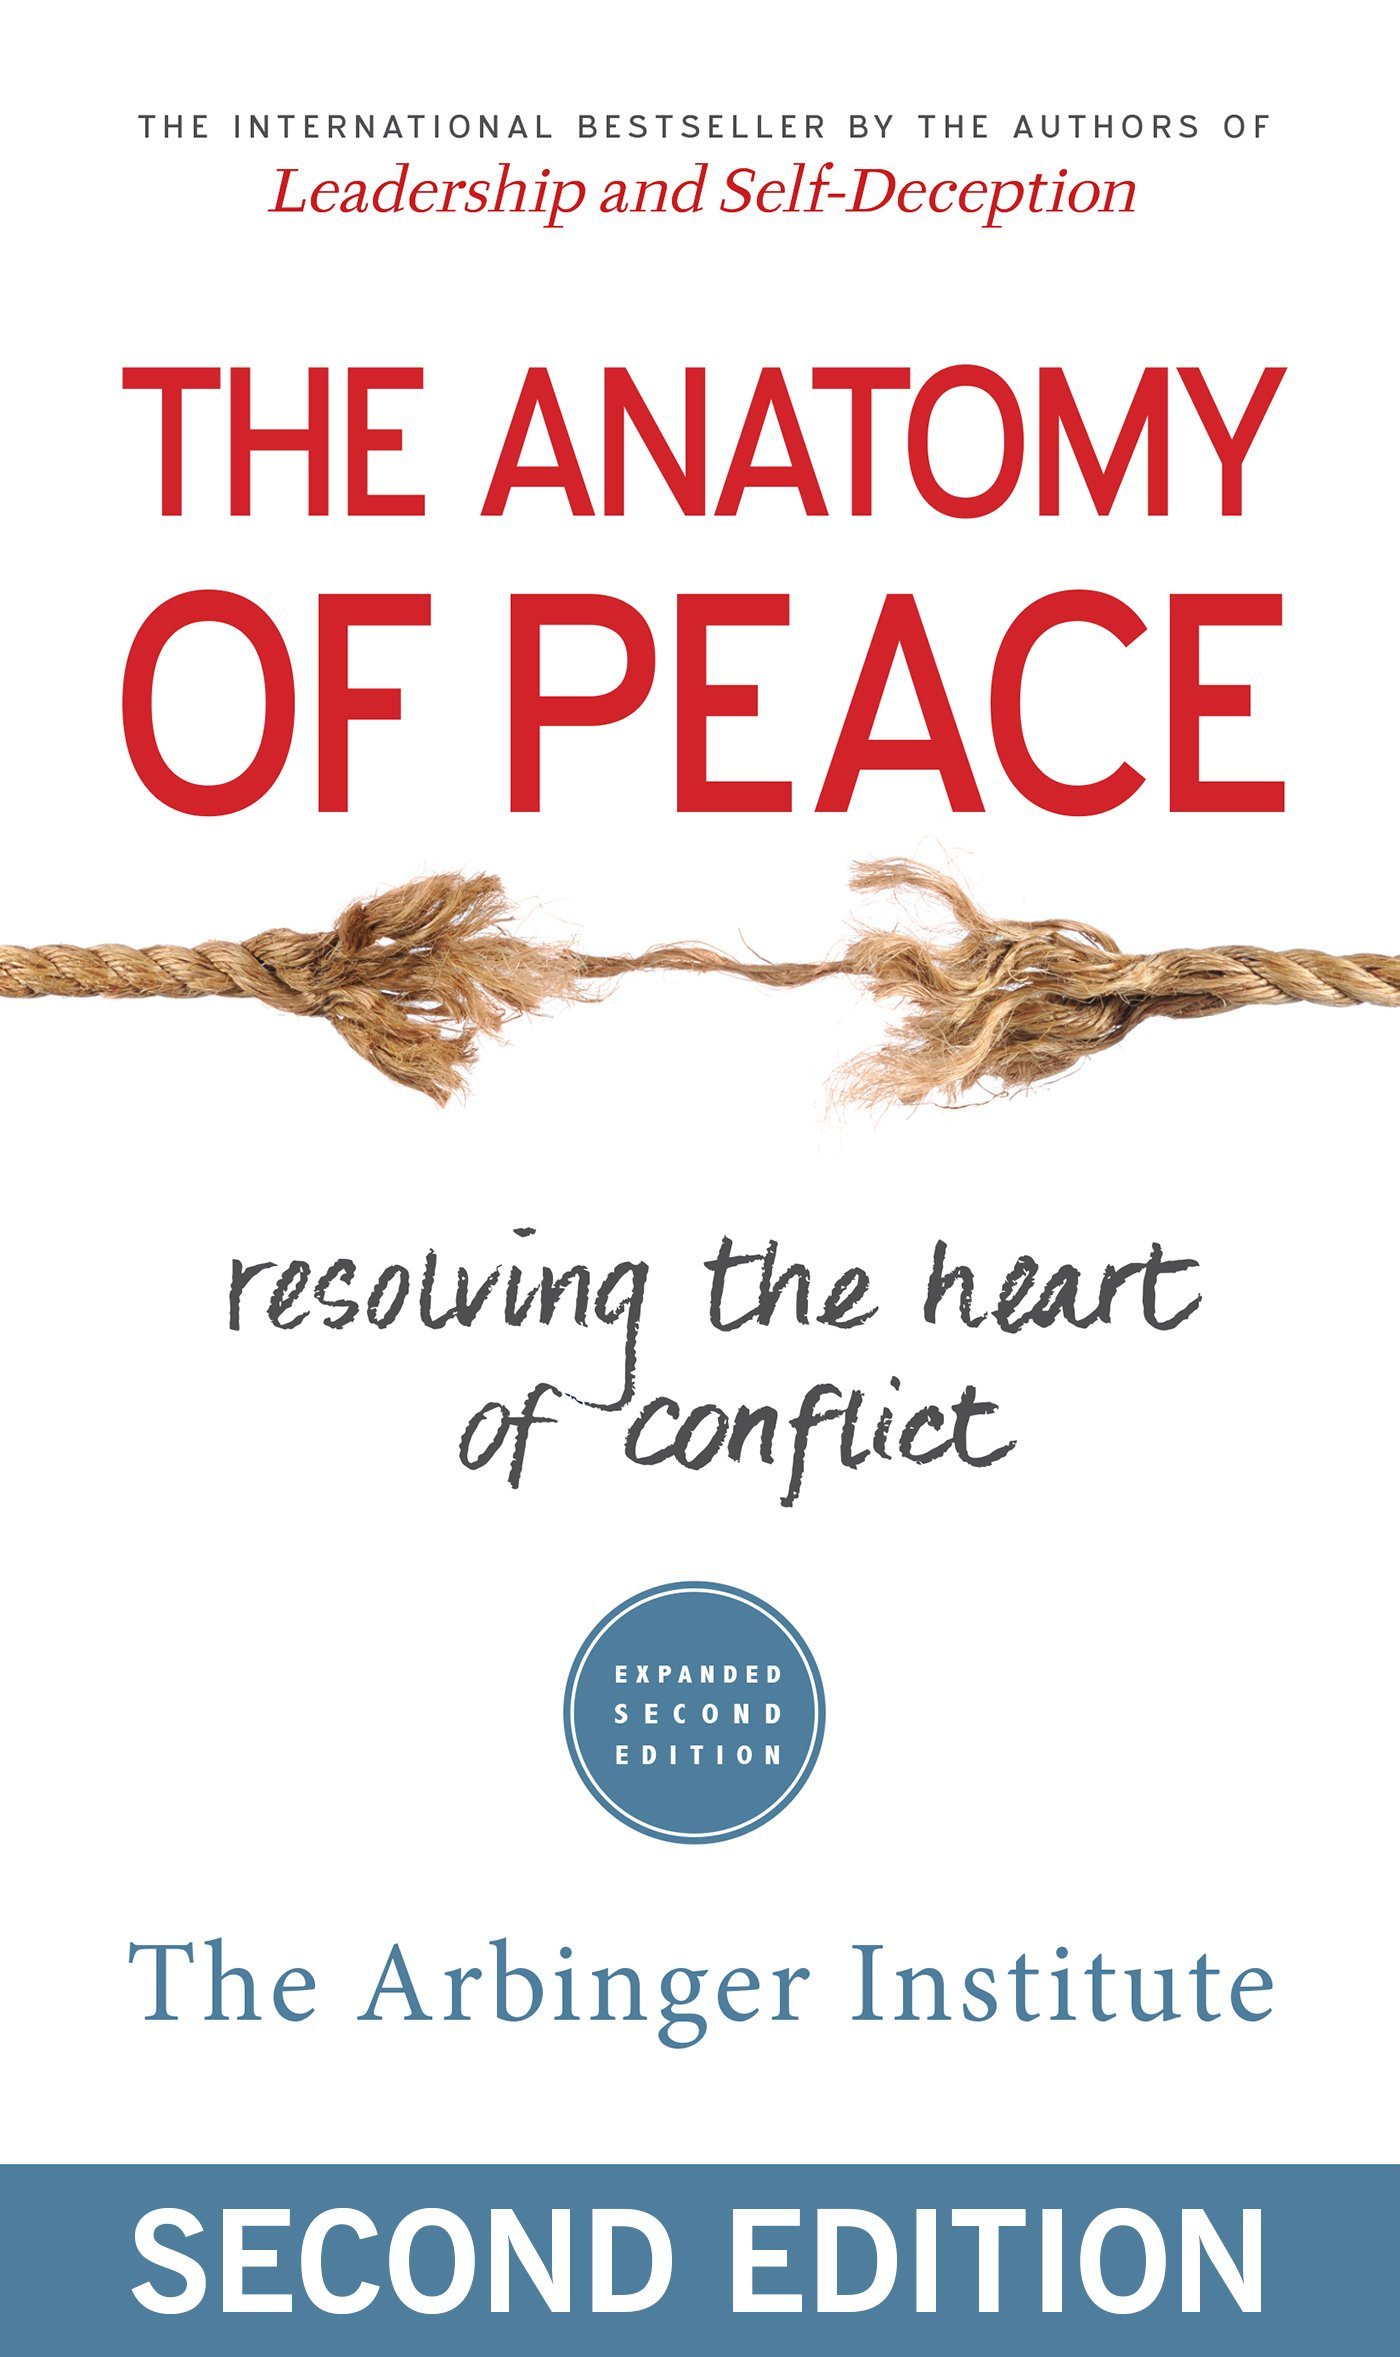 The anatomy of peace resolving the heart of conflict the arbinger the anatomy of peace resolving the heart of conflict the arbinger institute 0884984435382 amazon books fandeluxe Images